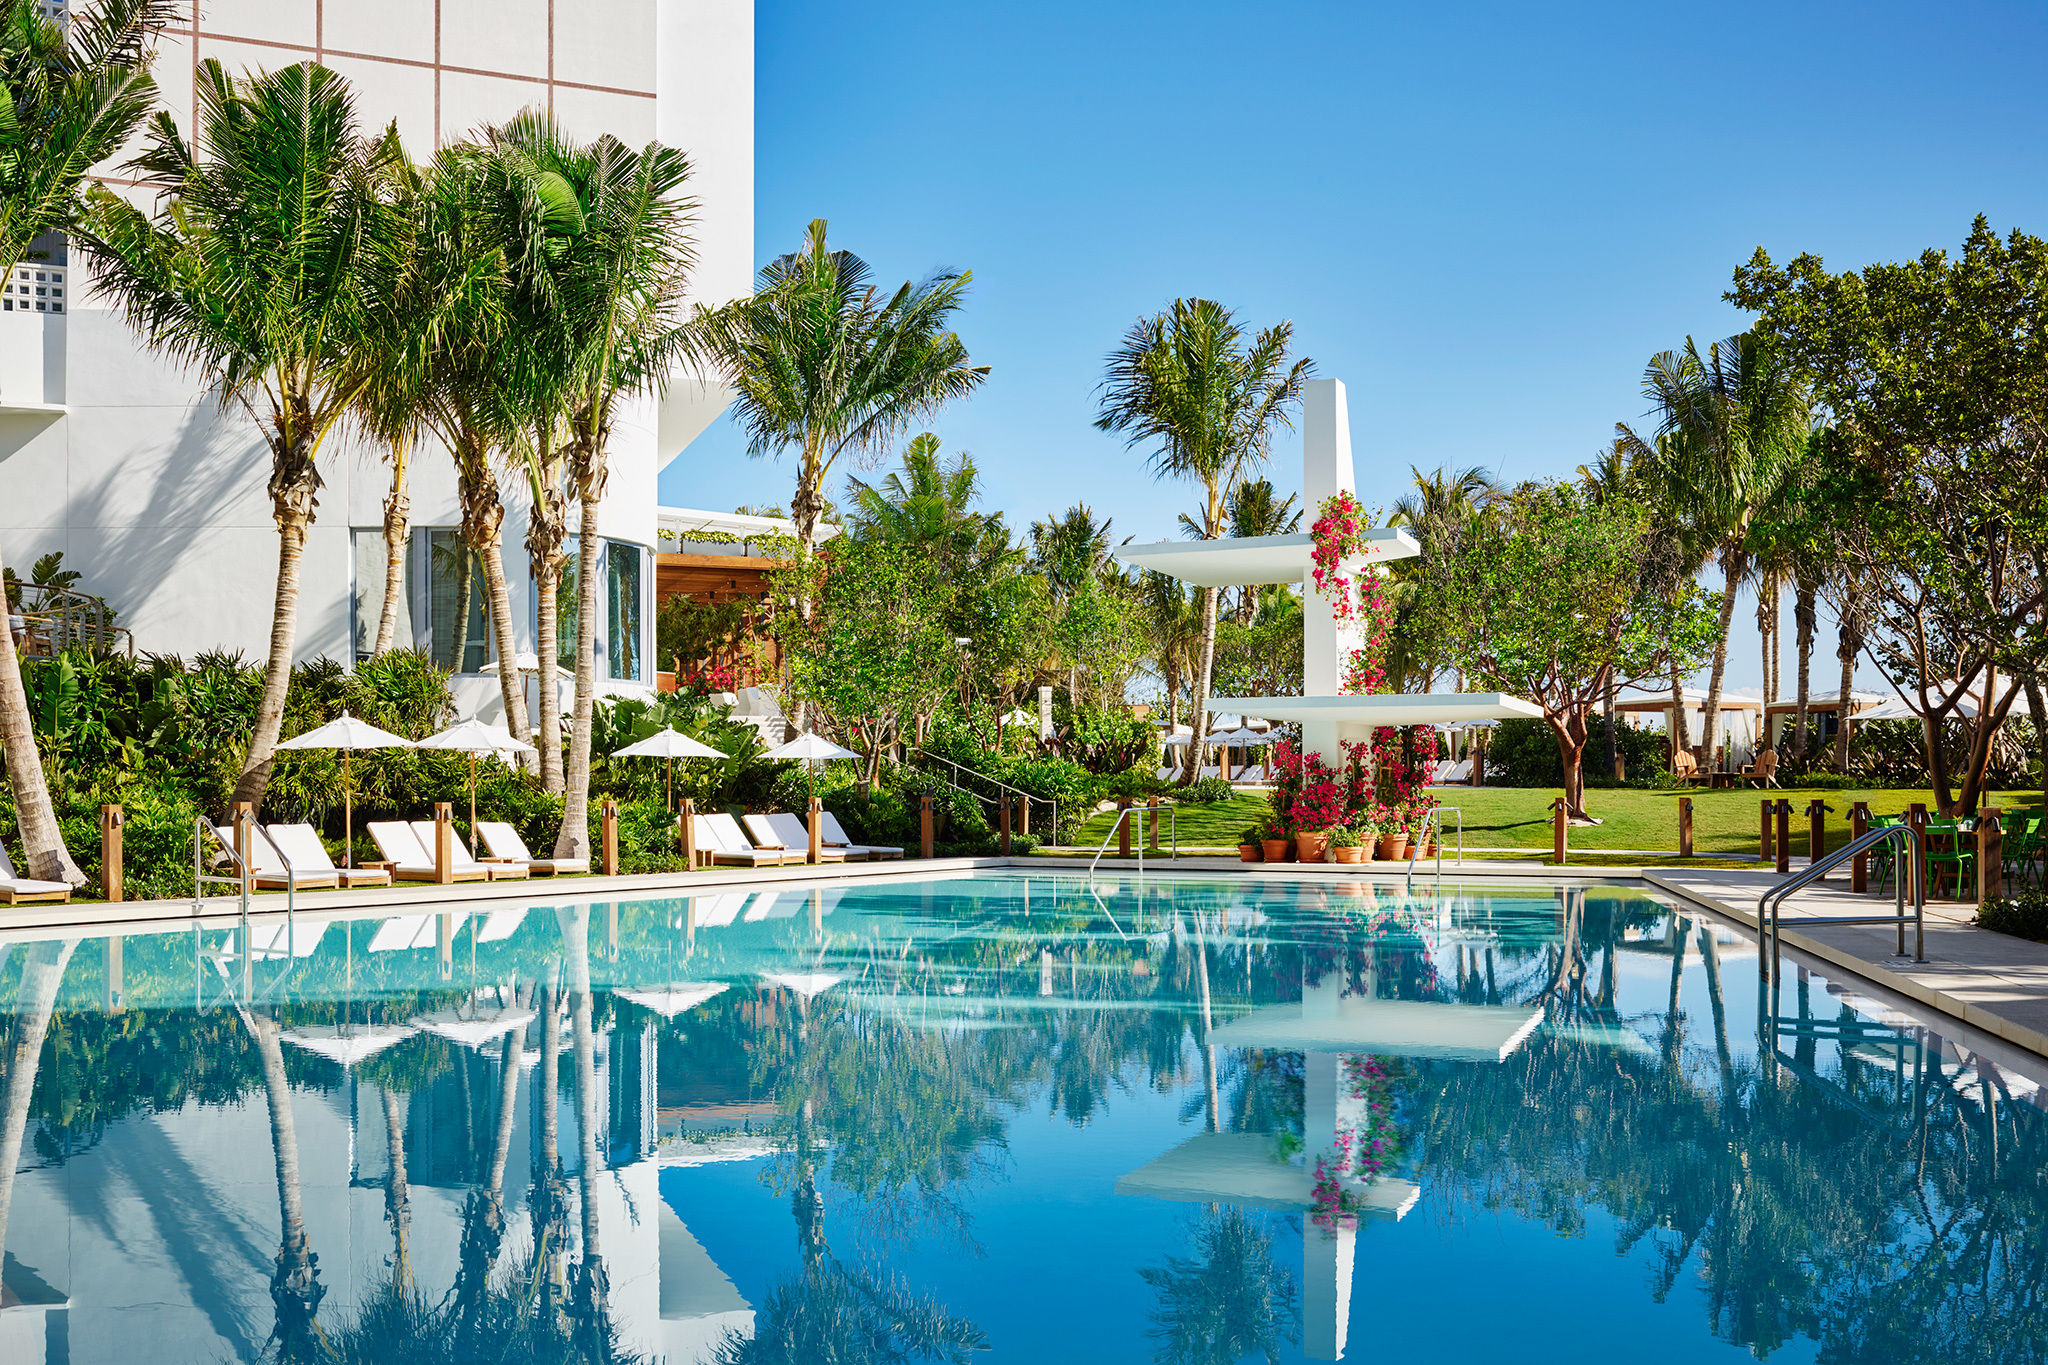 11 Best Swimming Pools In Miami For Splashing And Relaxing